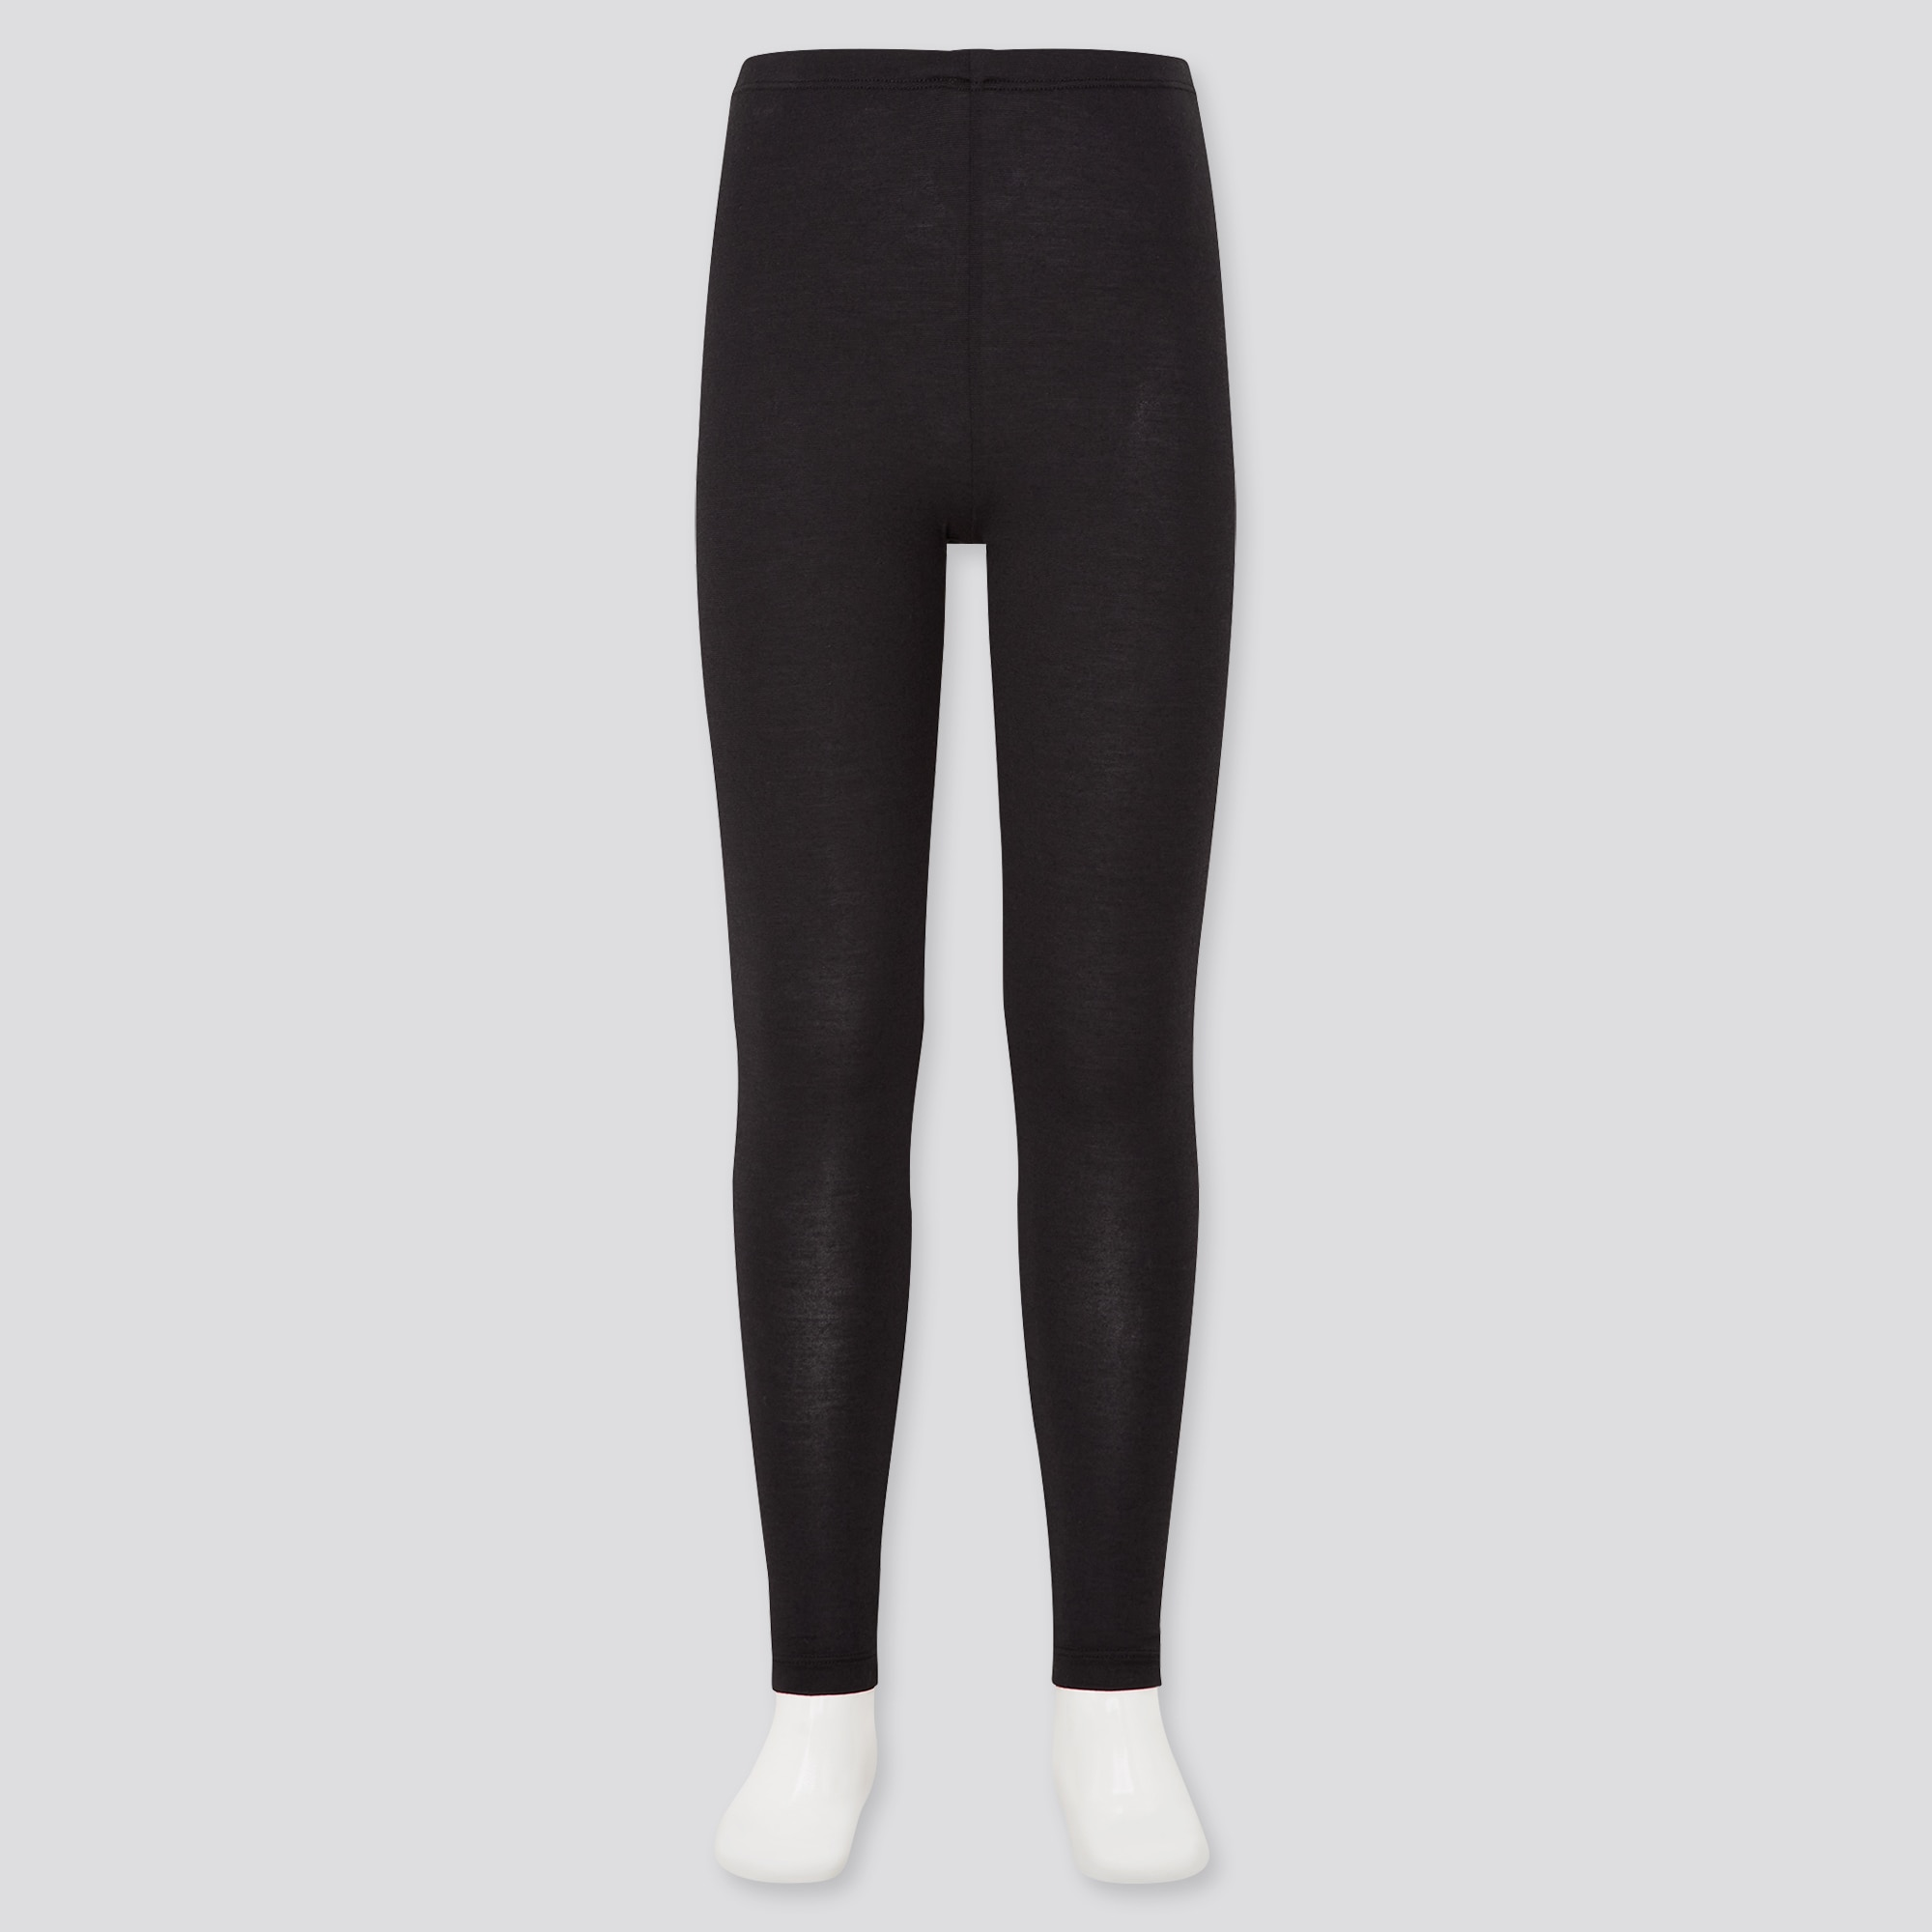 kids HEATTECH leggings